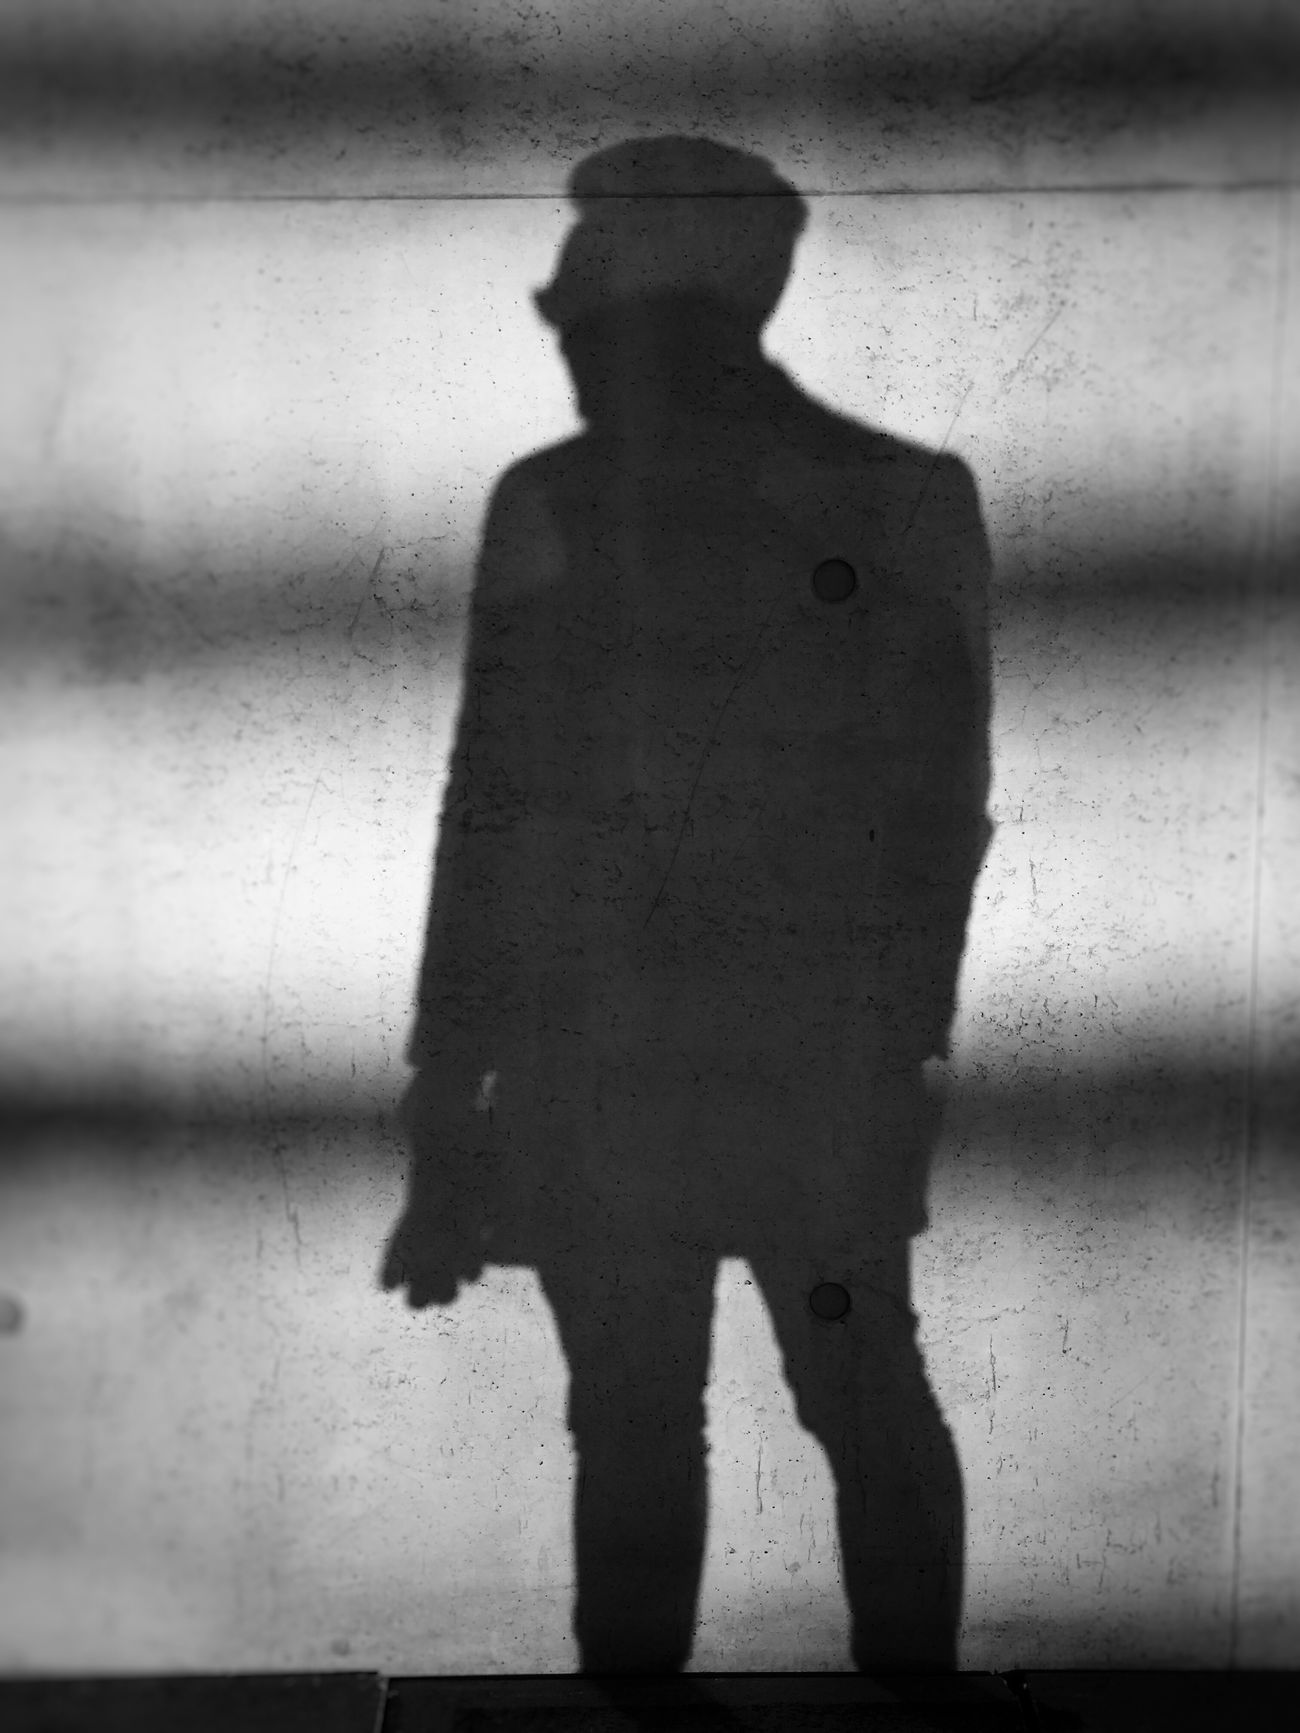 One Person Standing Full Length Shadow Silhouette Black And White Noir Film Noir Stylish Man Manly  Male Model Pose Hitman Dangerous Sinister Adult Men Adults Only Businessman Only Men Day Indoors  People